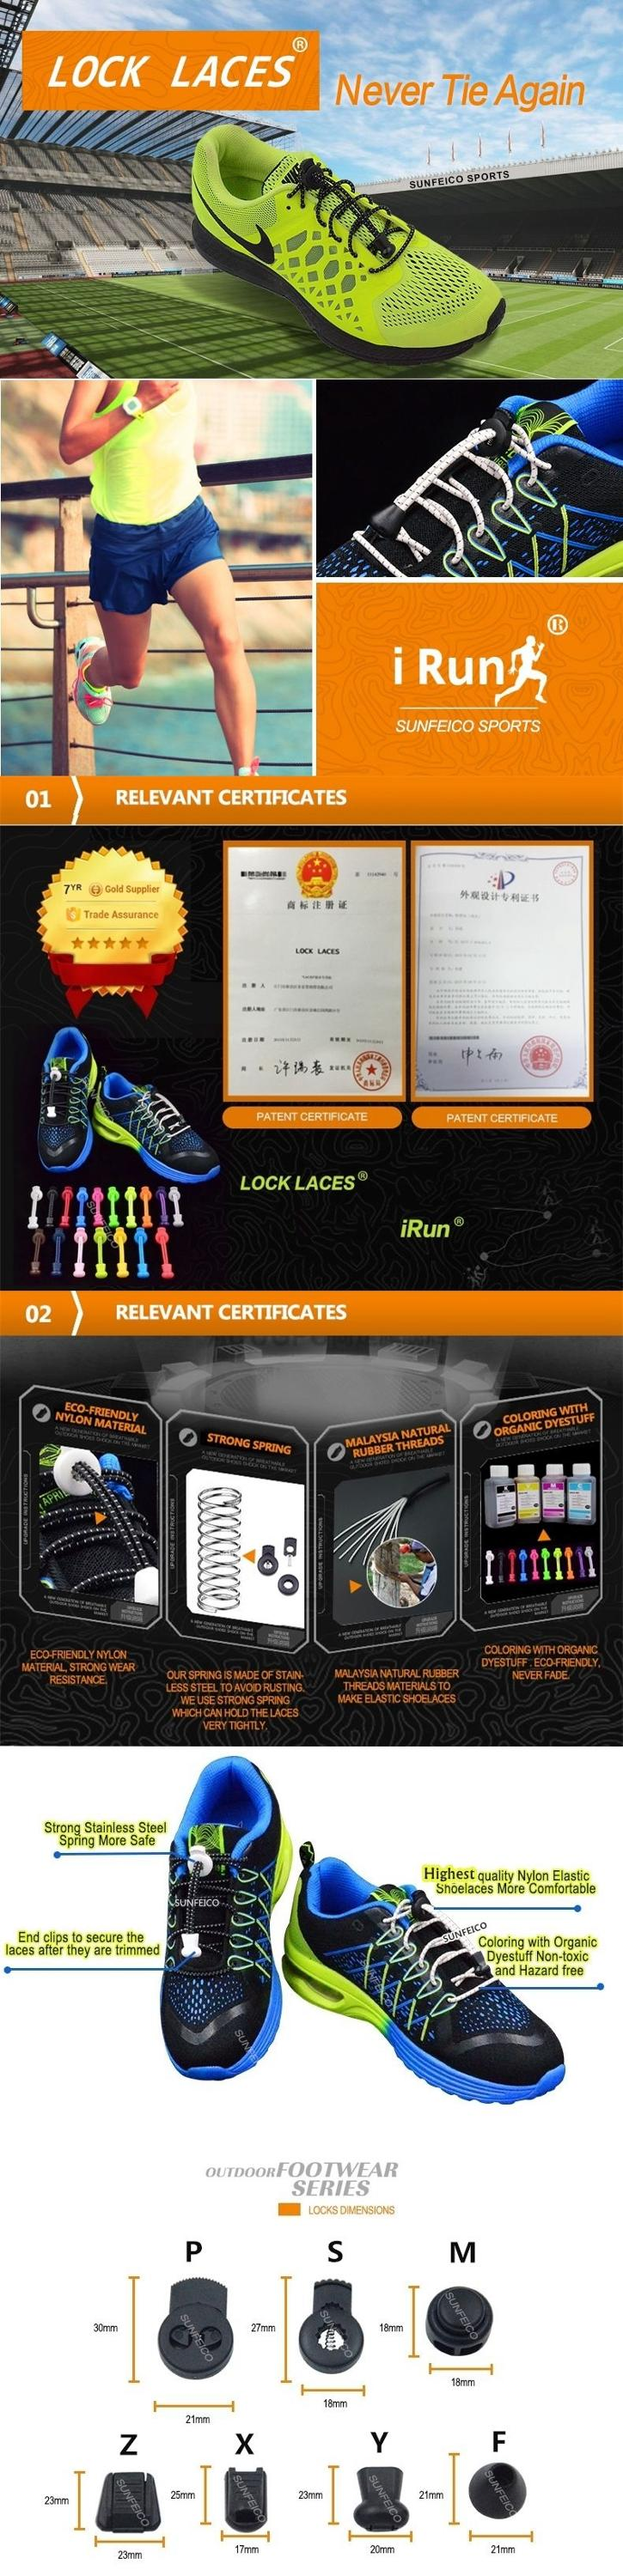 (MOQ:100pair) No Tie Elastic Shoelaces Lock Laces for Sneakers available in 58 colors with 12 locks options +6 packaging options